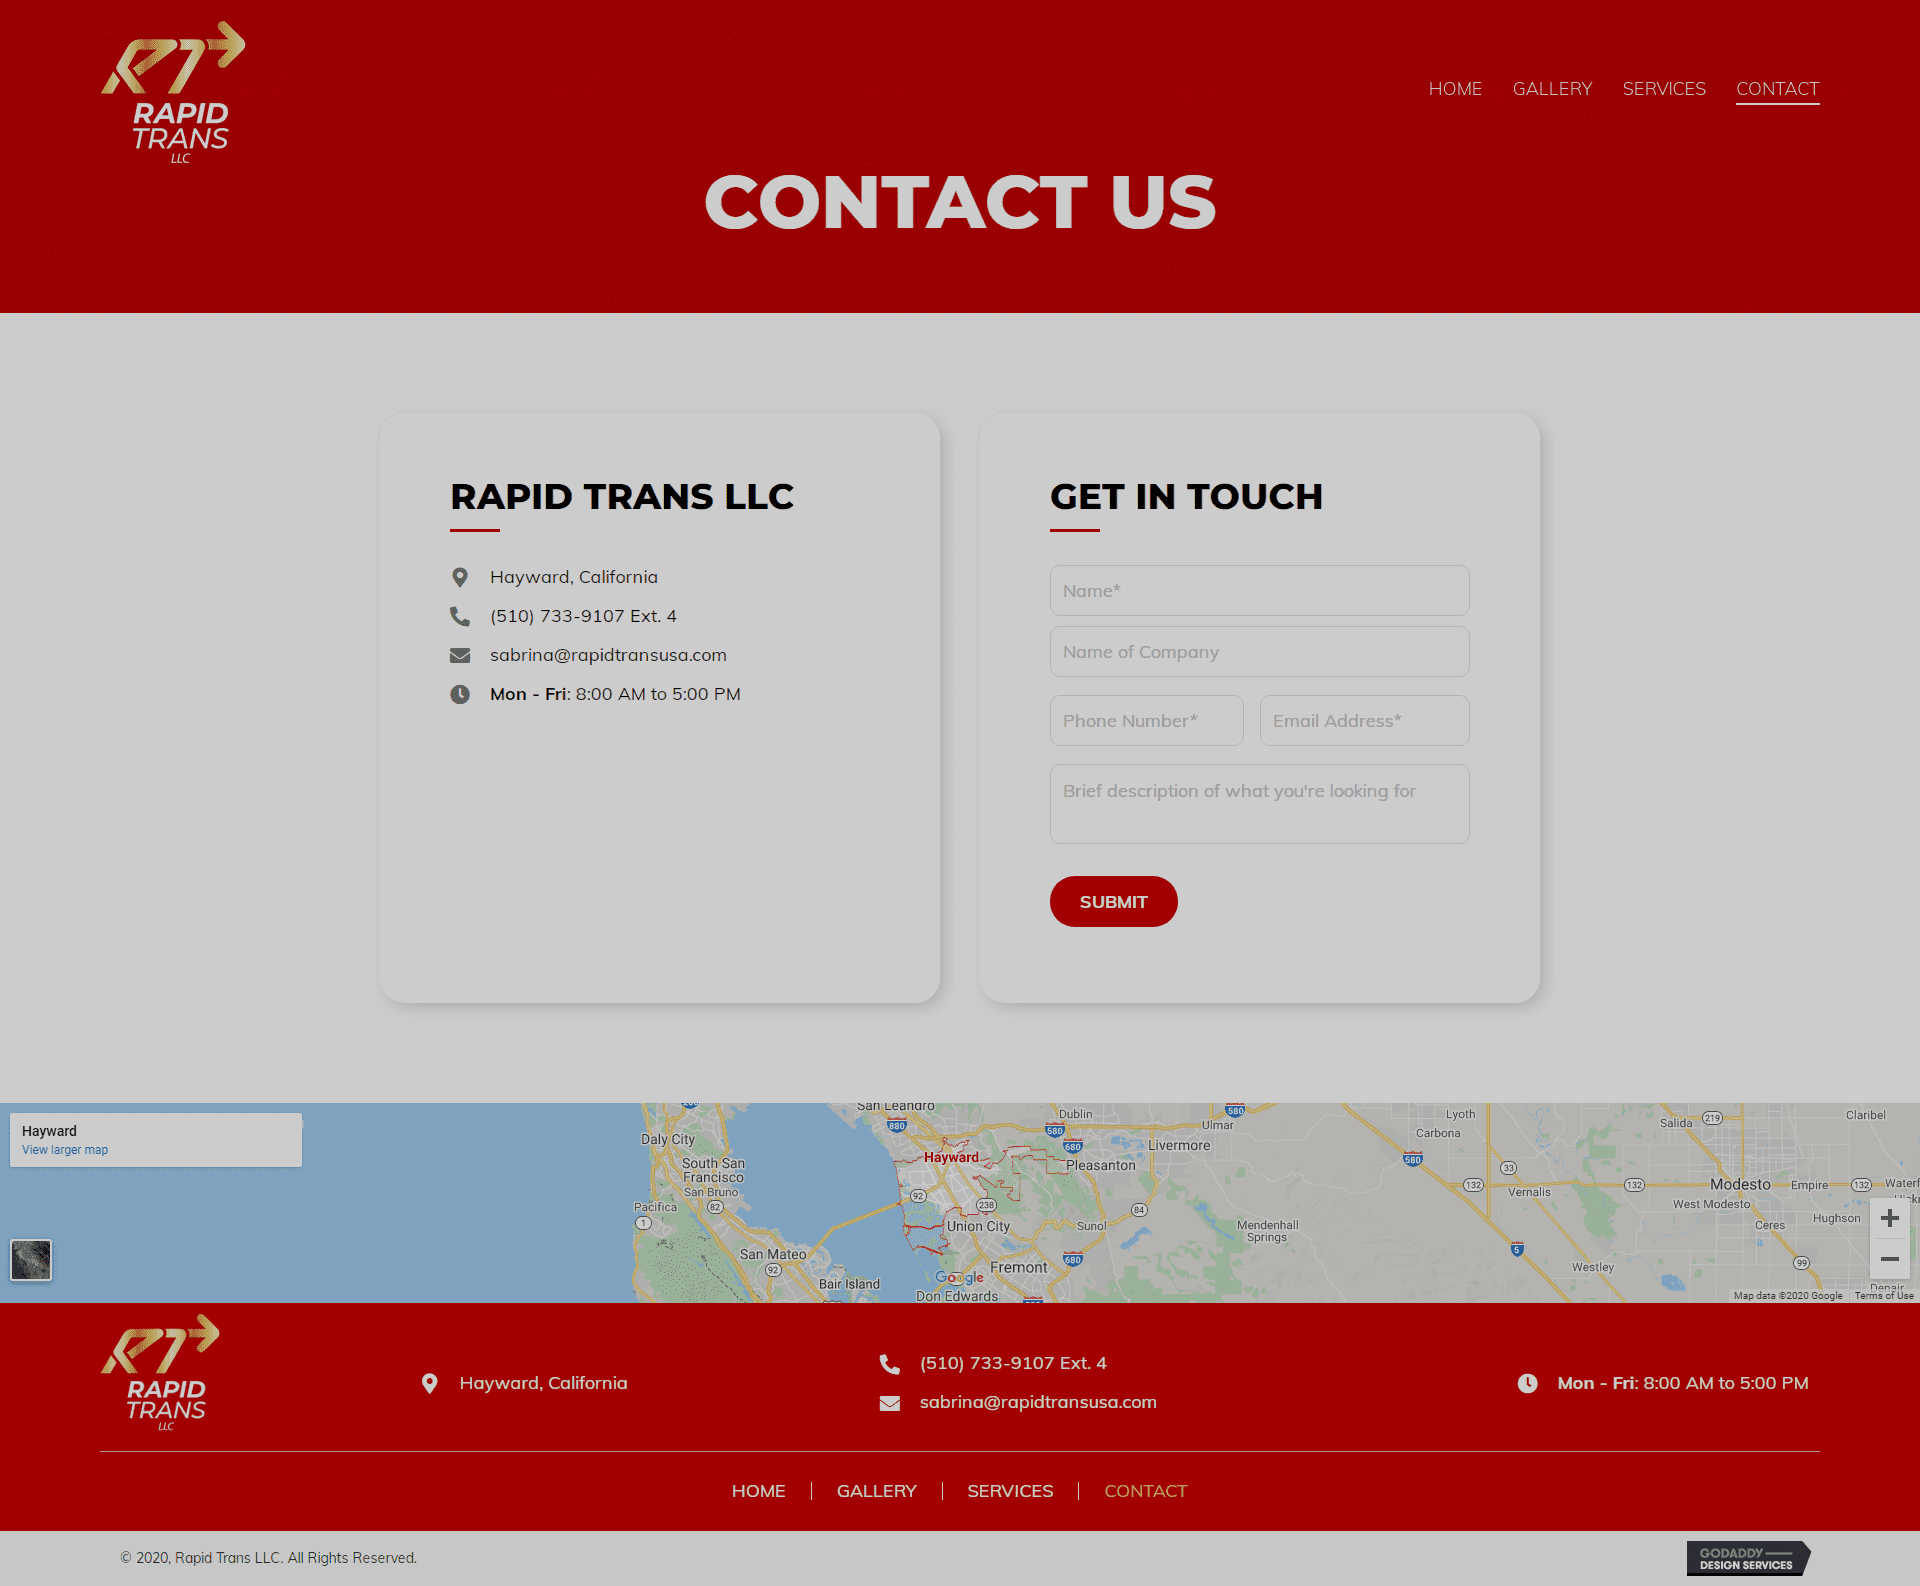 Rapid Trans LLC Contact Page